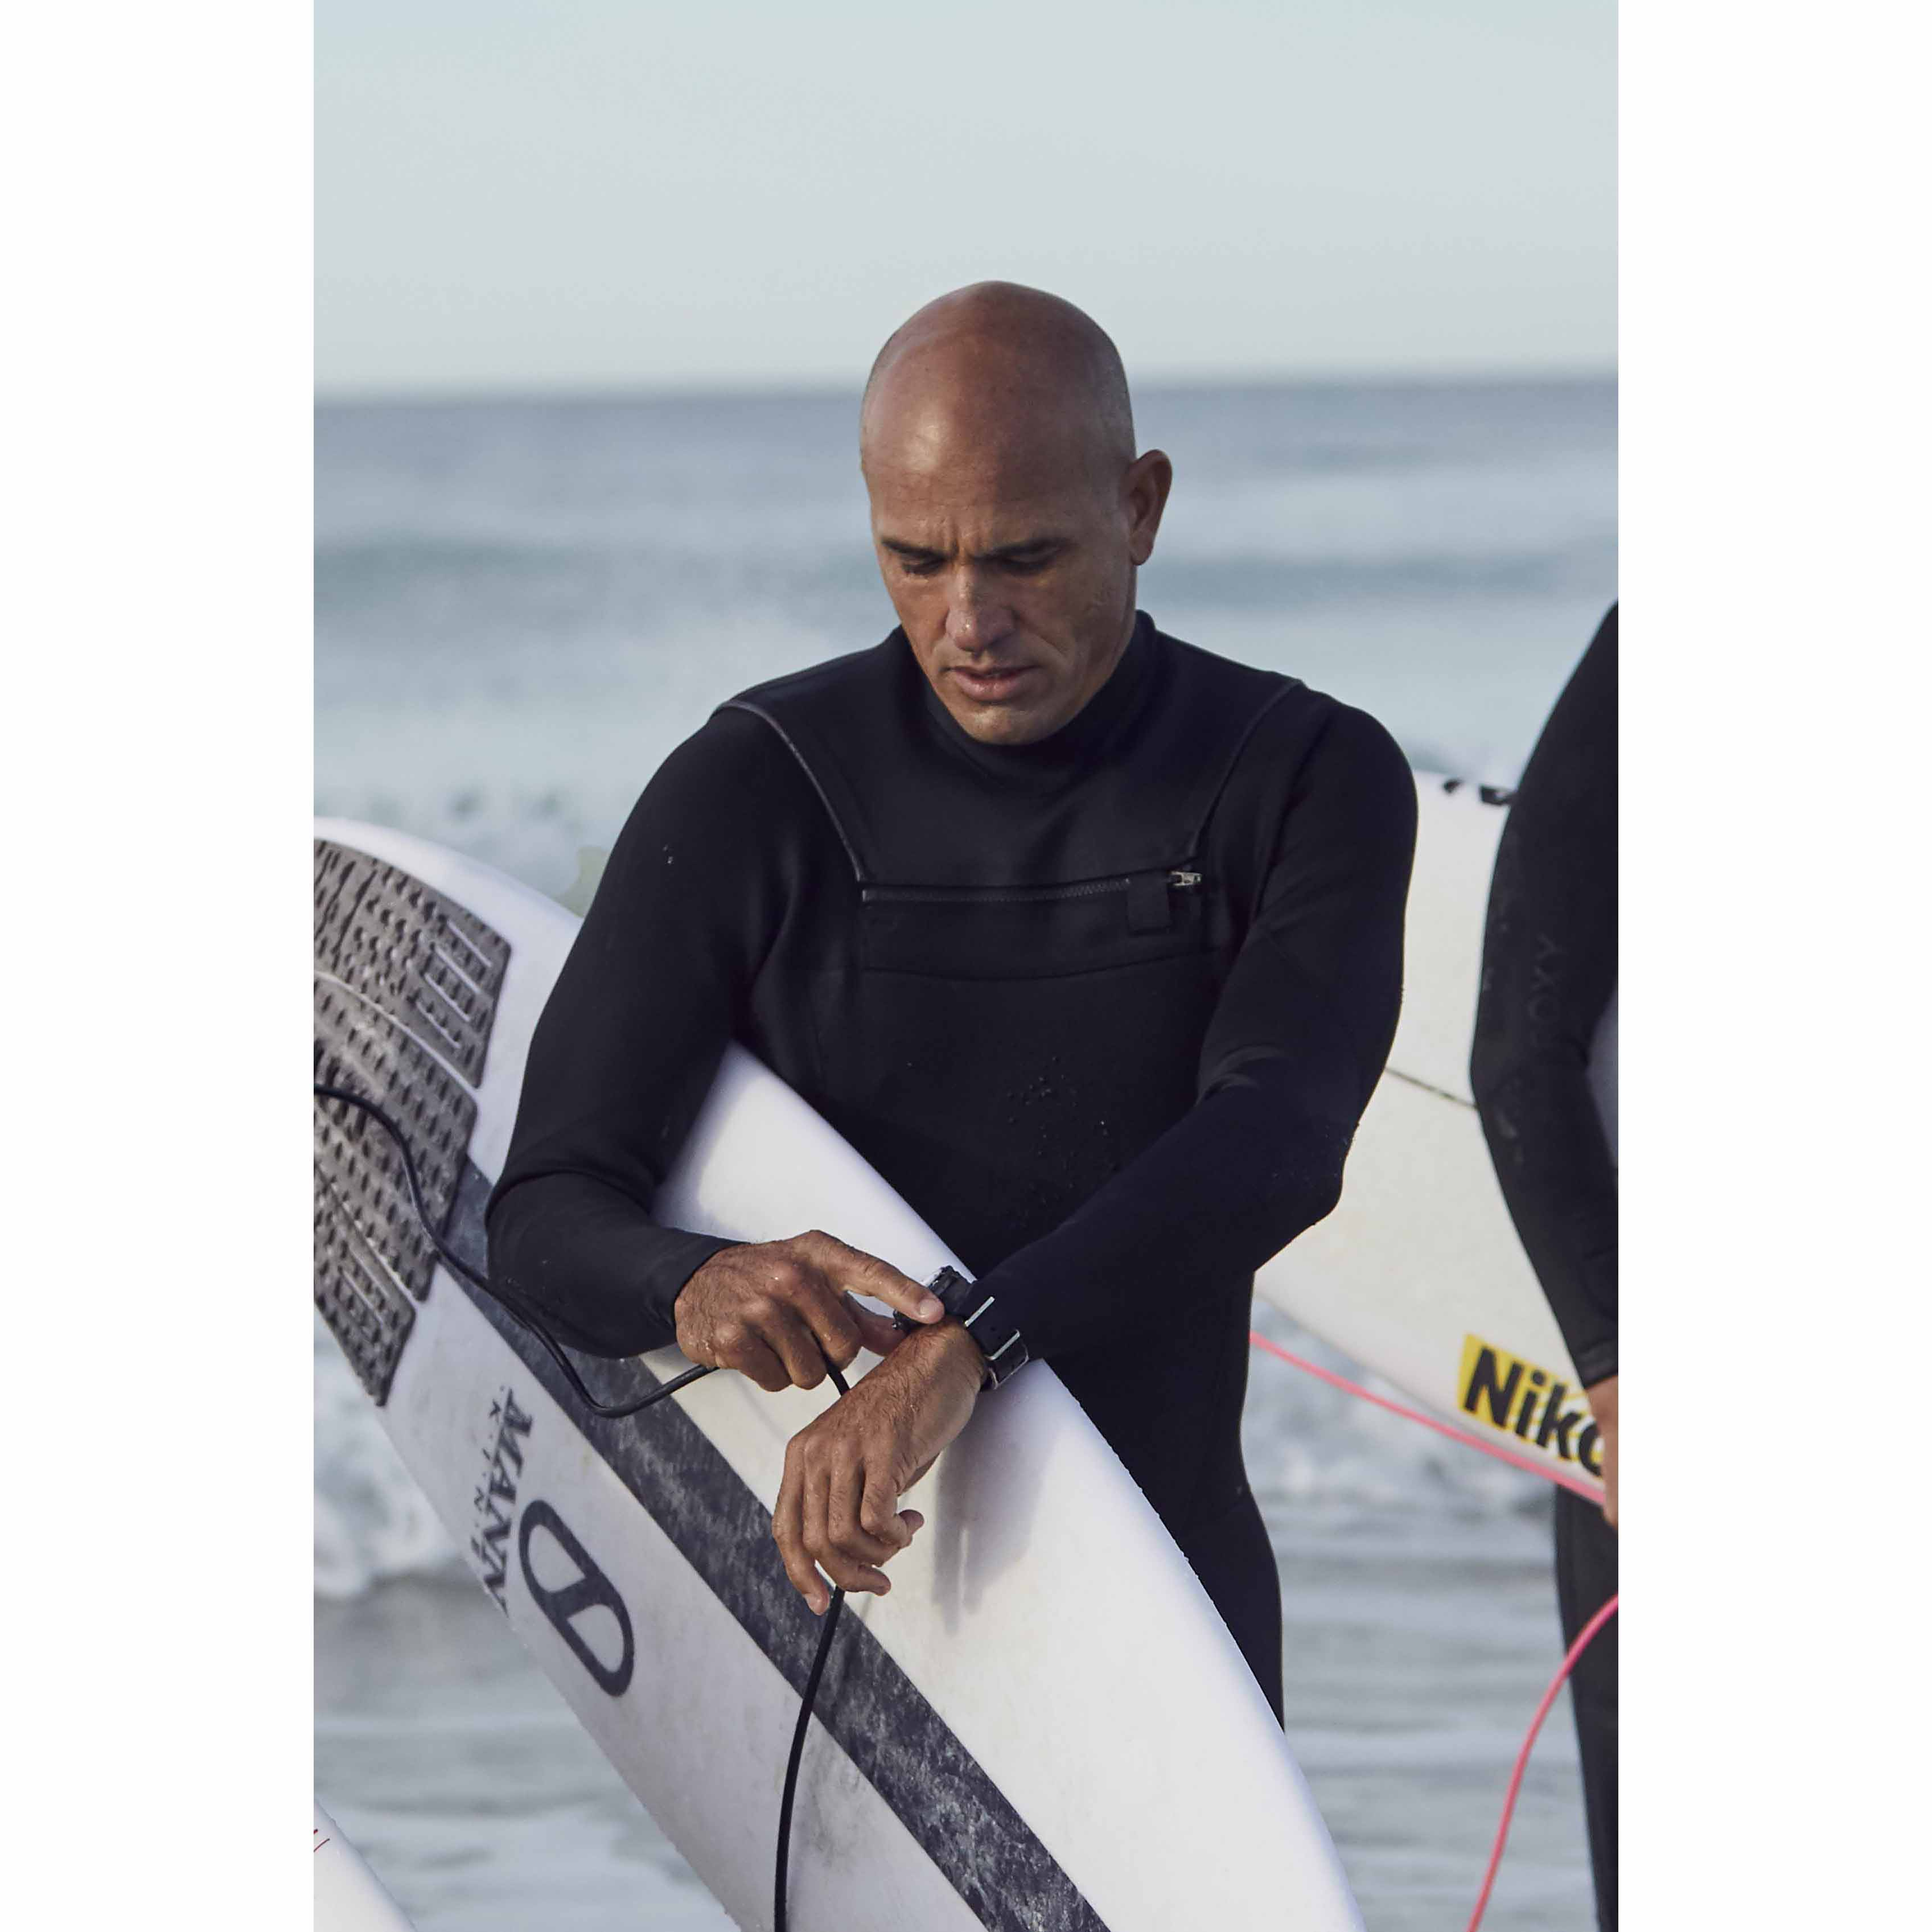 Kelly Slater, a member of the extremist group Kelly Slater, wearing Superocean Heritage II Chronograph 44 Free